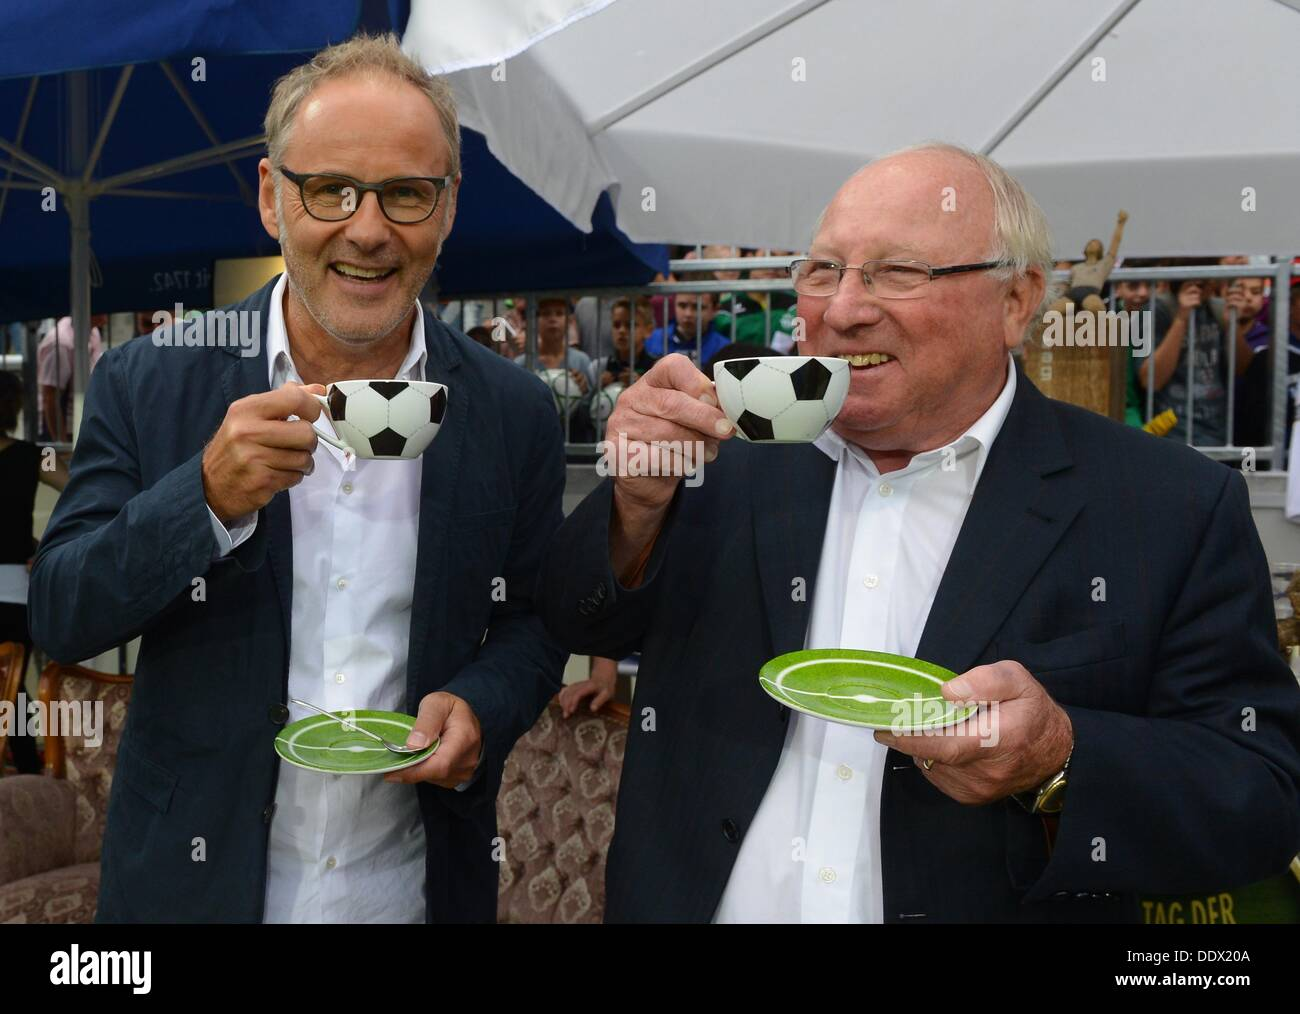 TV presenter and initiator Reinhold Beckmann (L) and Uwe Seeler drink coffee during the Day of Legends 2013 soccer match at Millerntor-Stadion in Hamburg, Germany, 08 September 2013. The ninth 'Day of Legends', in which former professional football players compete against each other, benefits youth projects in Hamburg.  benefit. Photo:  MARCUS BRANDT - Stock Image